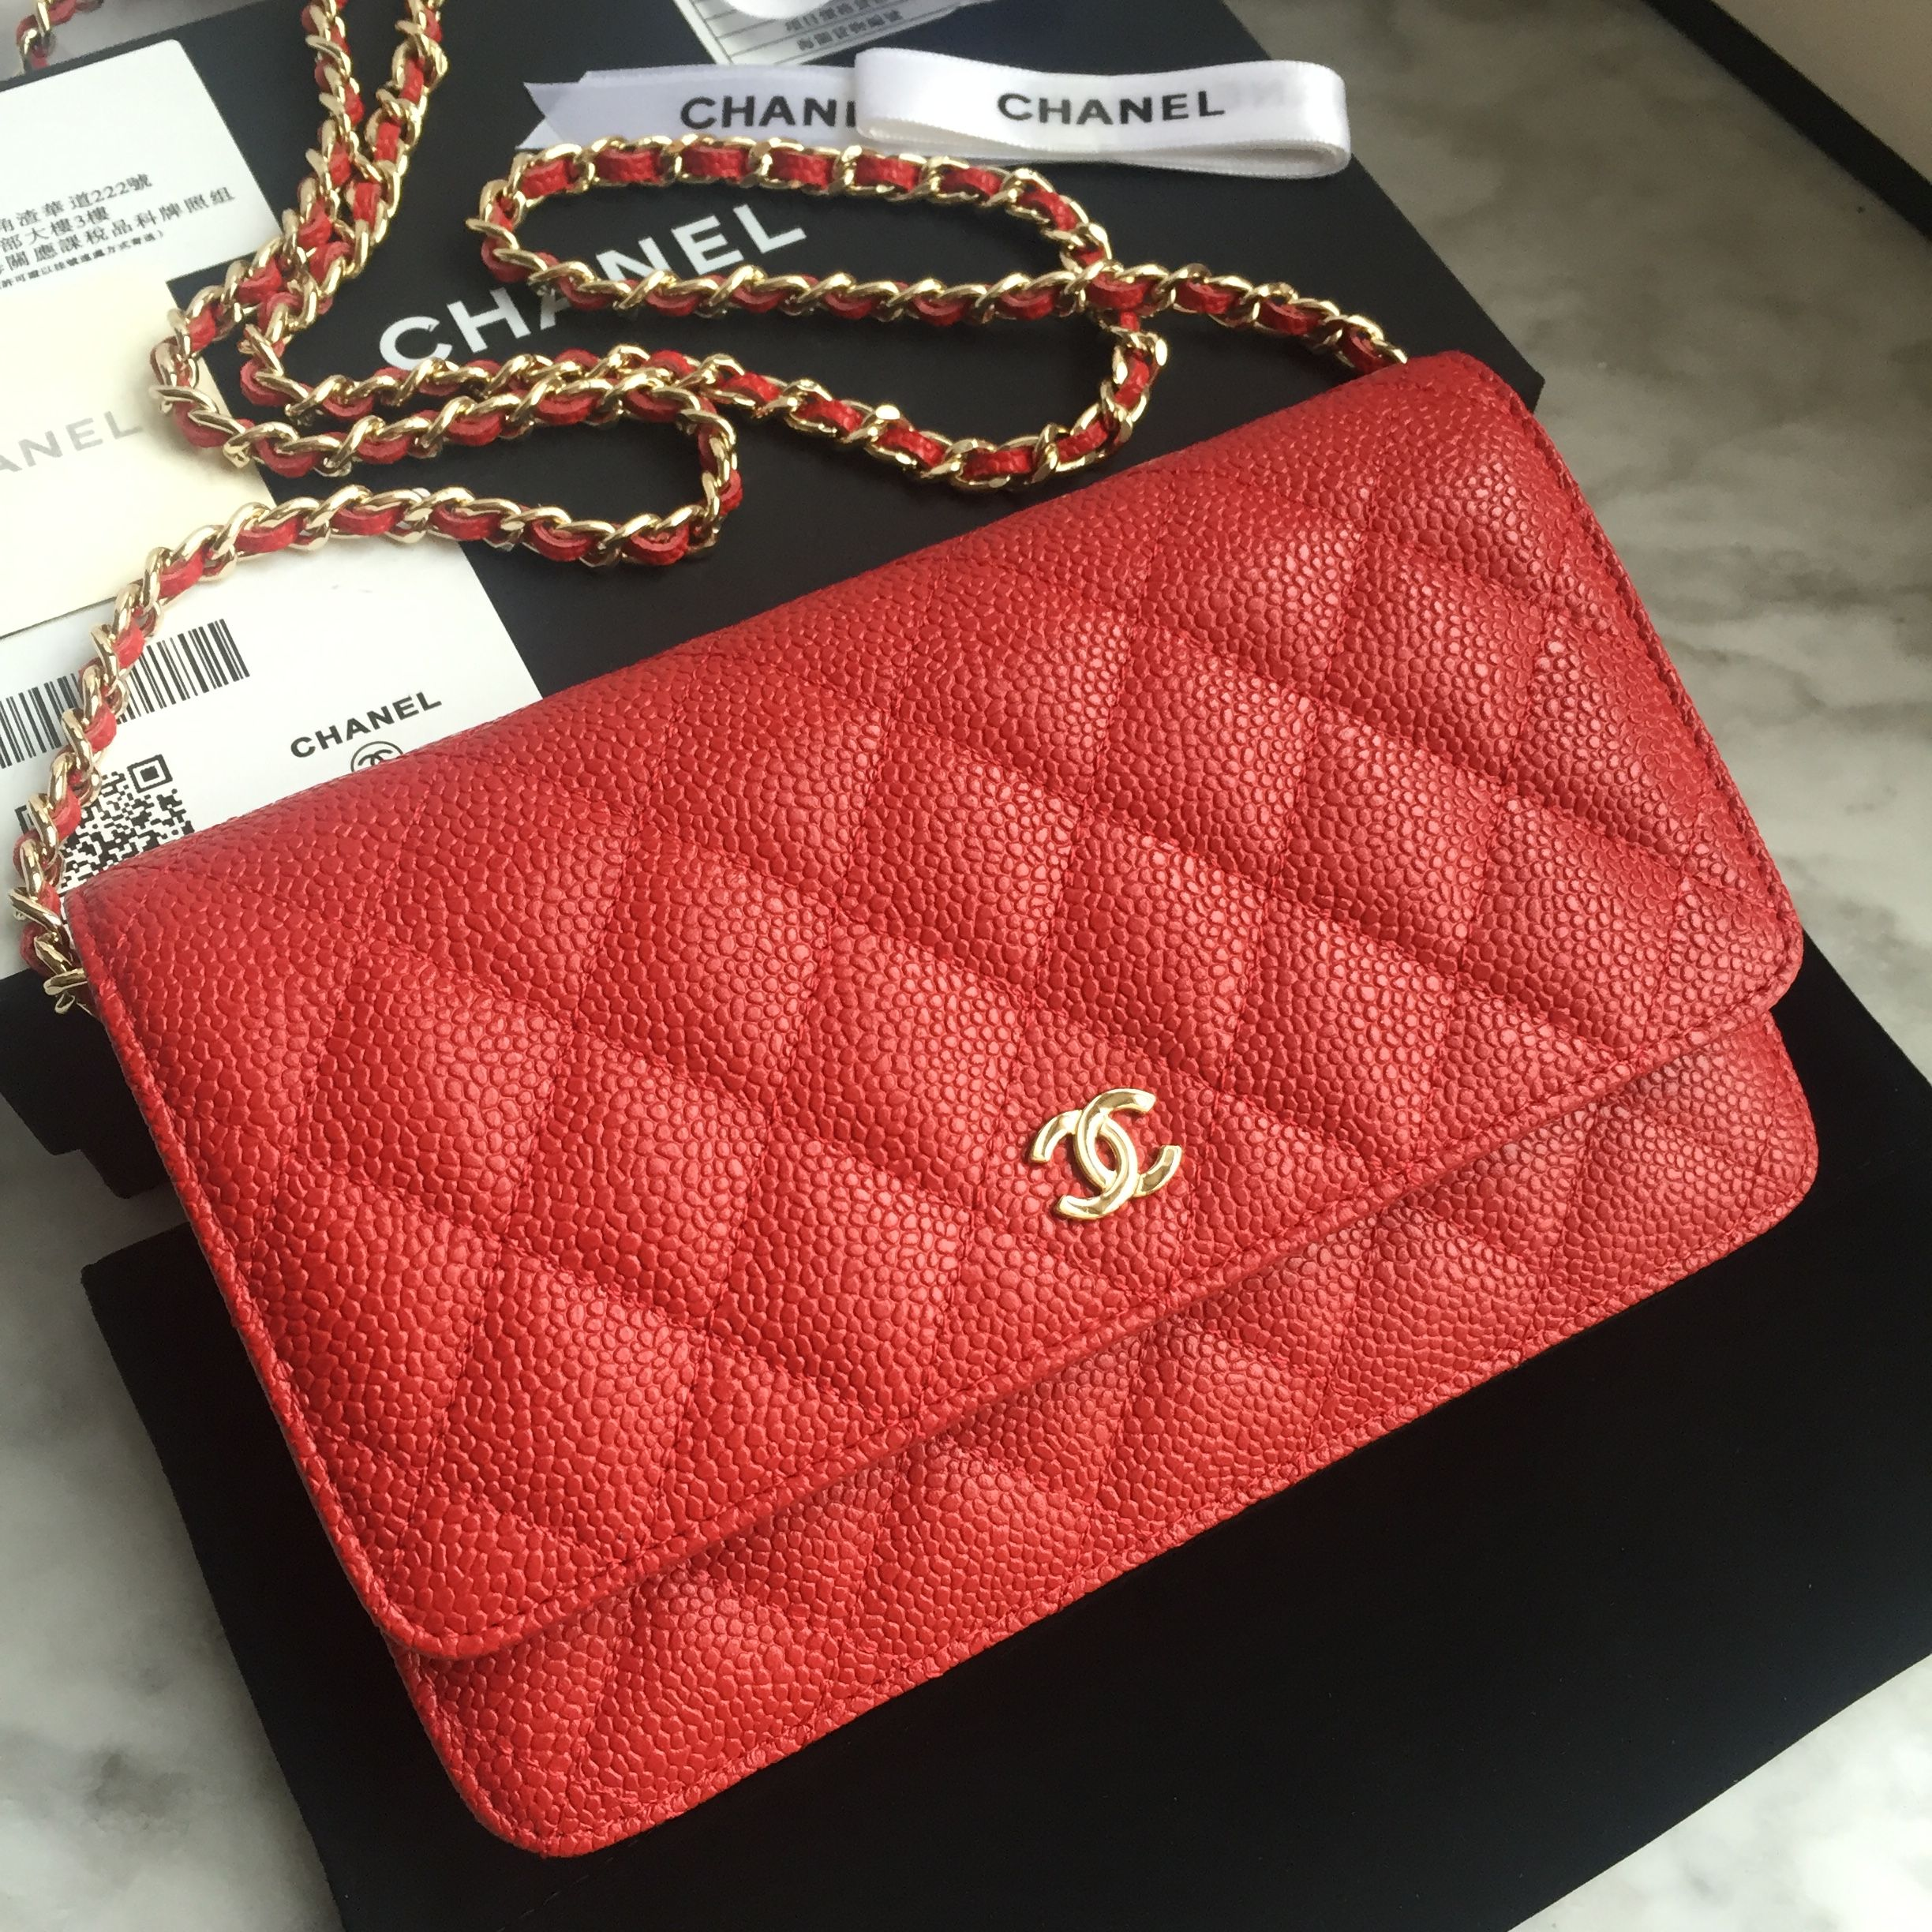 668837d976ae Chanel woc wallet of chain woman flap bag caviar original leather red